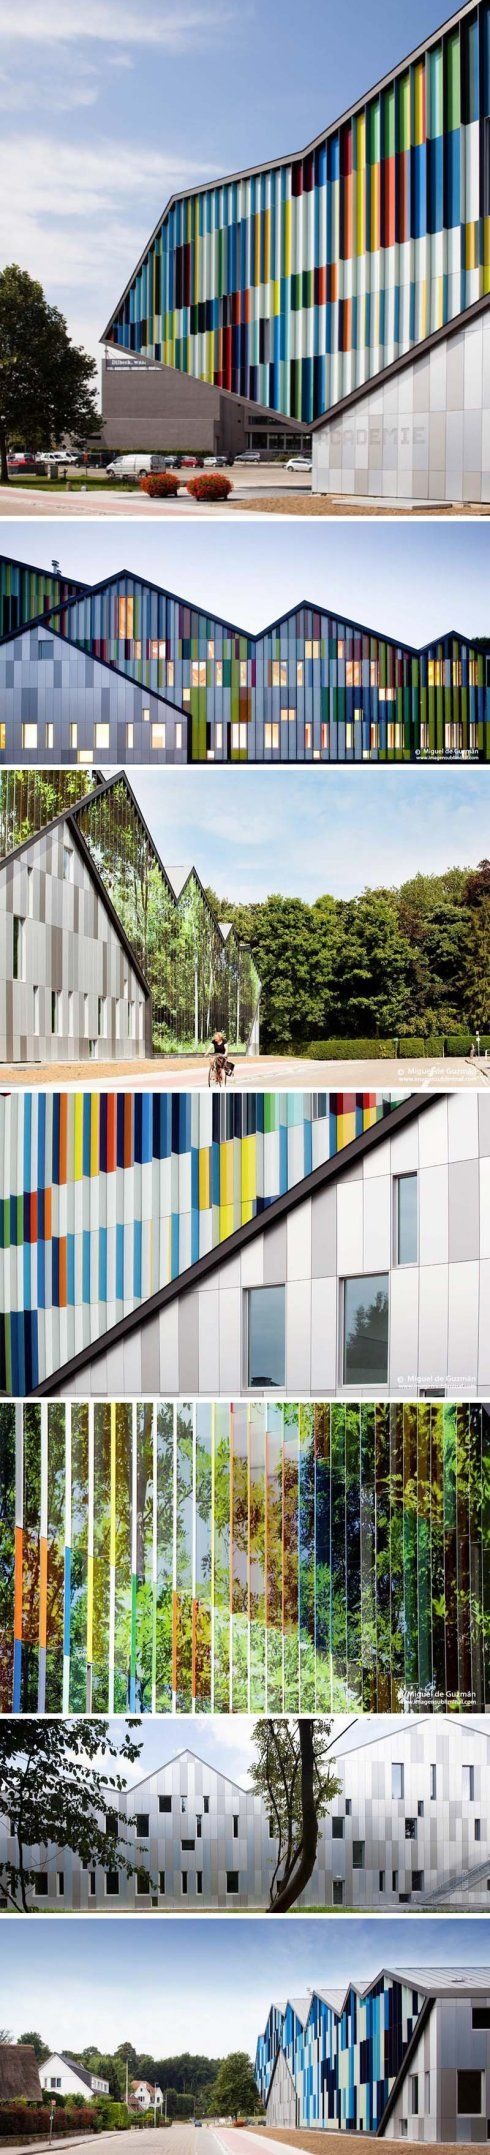 Academie MWD Dilbeek, Belgium, Music, Dance, & Theater Academy designed by Carlos Arroyo. Cool optical illusion facade.